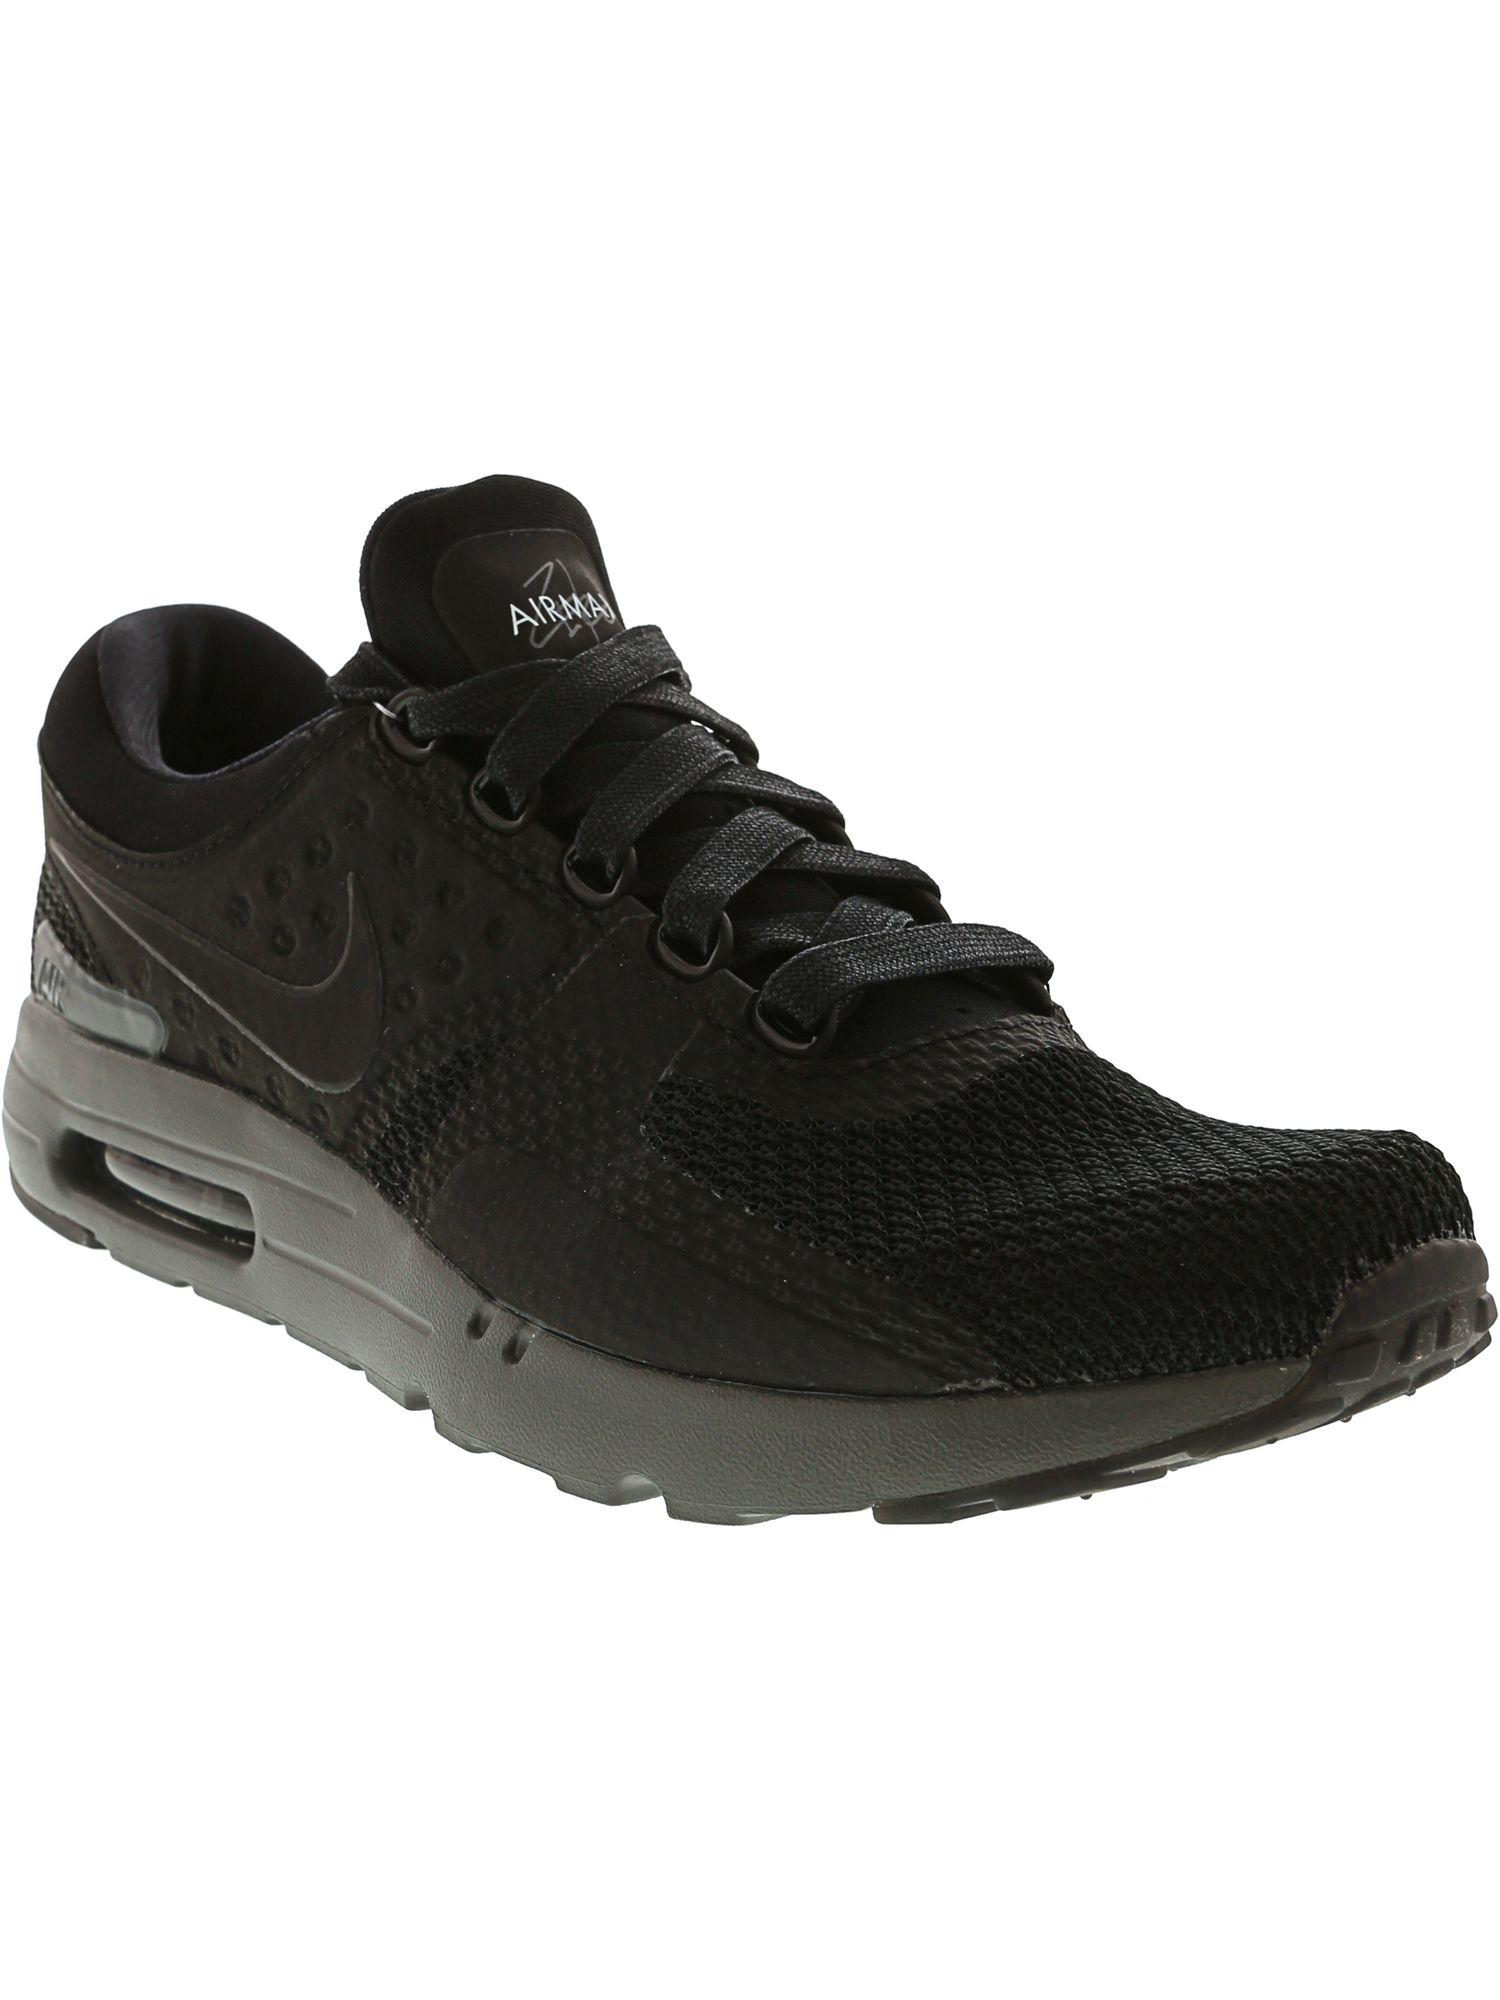 best sneakers ae786 c3a18 Nike Men s Air Max Zero Ankle-high Fabric Running Shoe in Black for Men -  Lyst